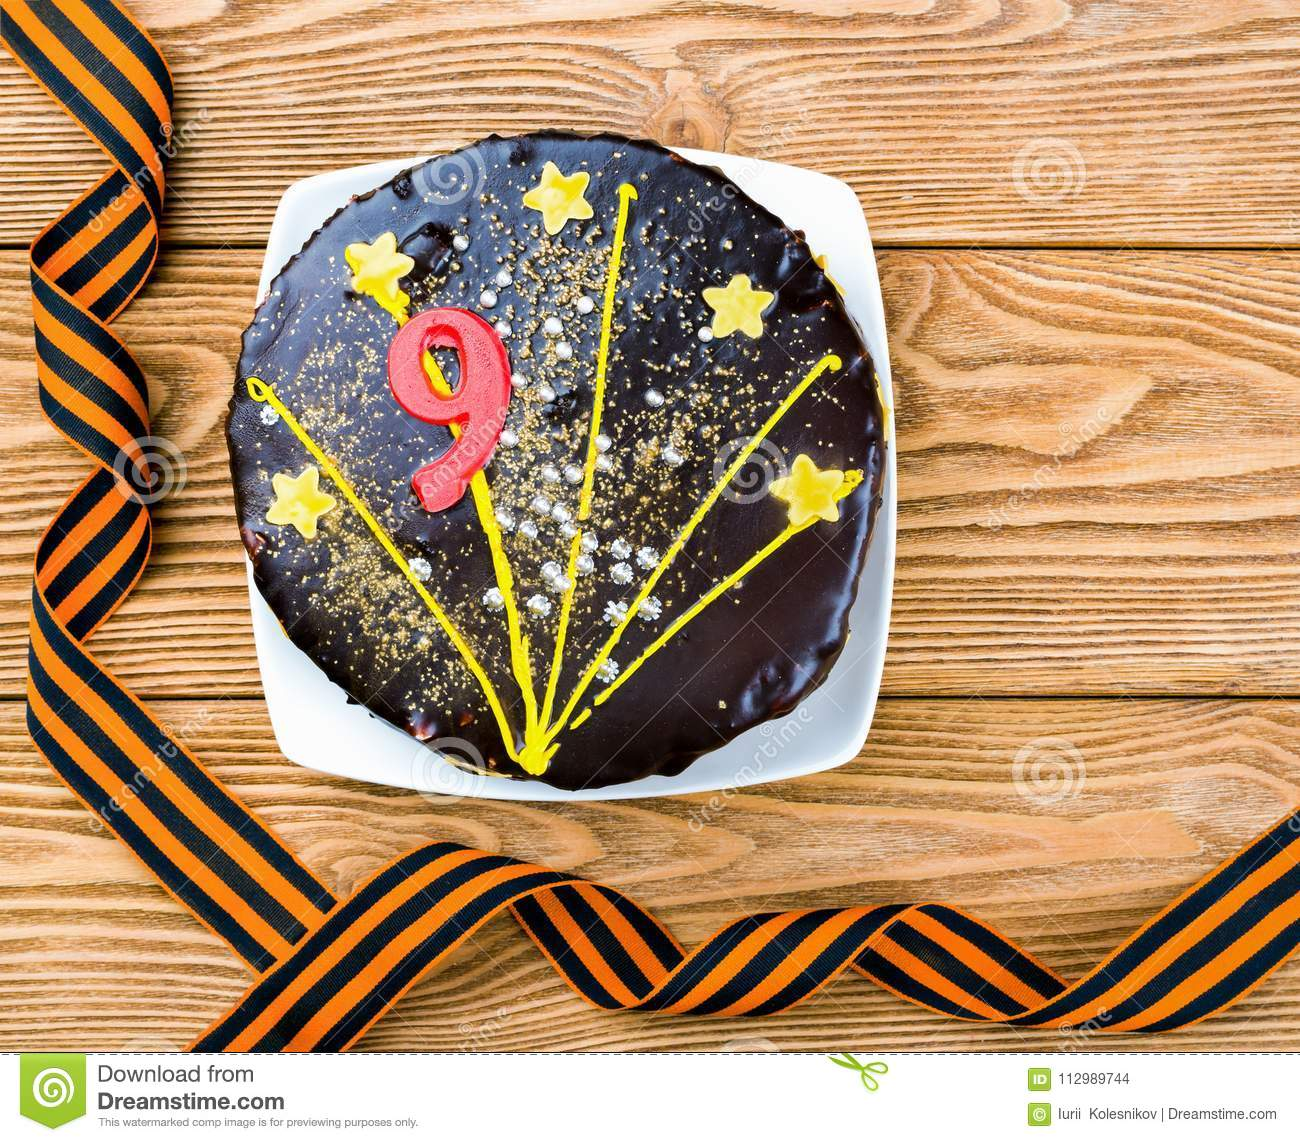 Cake on a plate and St. George ribbons on a wooden background in honor of May 9